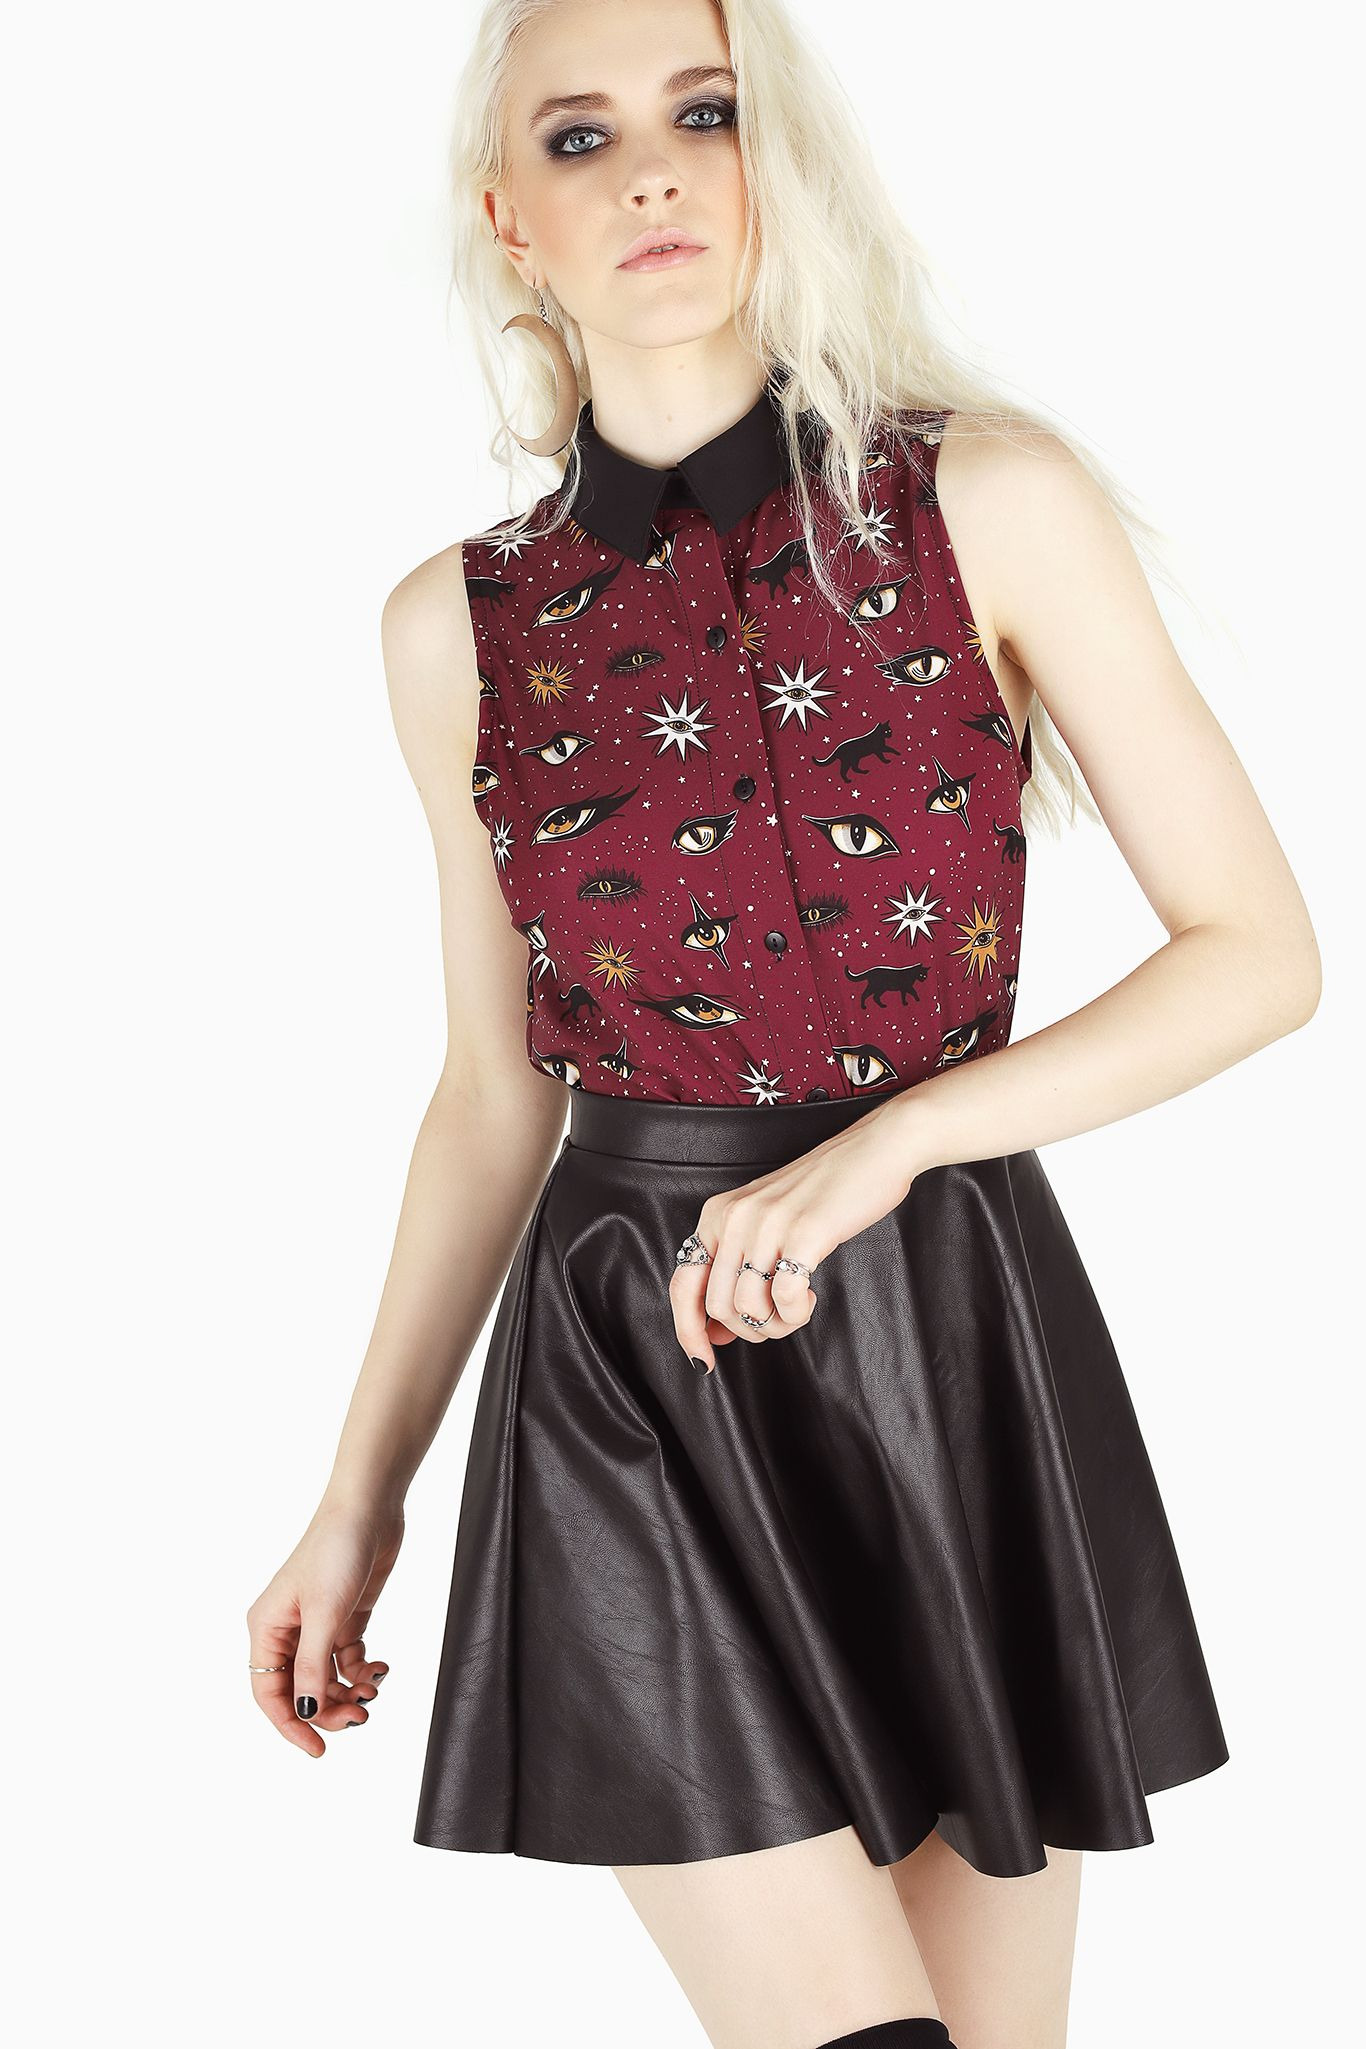 Cat's Eye Business Time Shirt LIMITED (80AUD) by